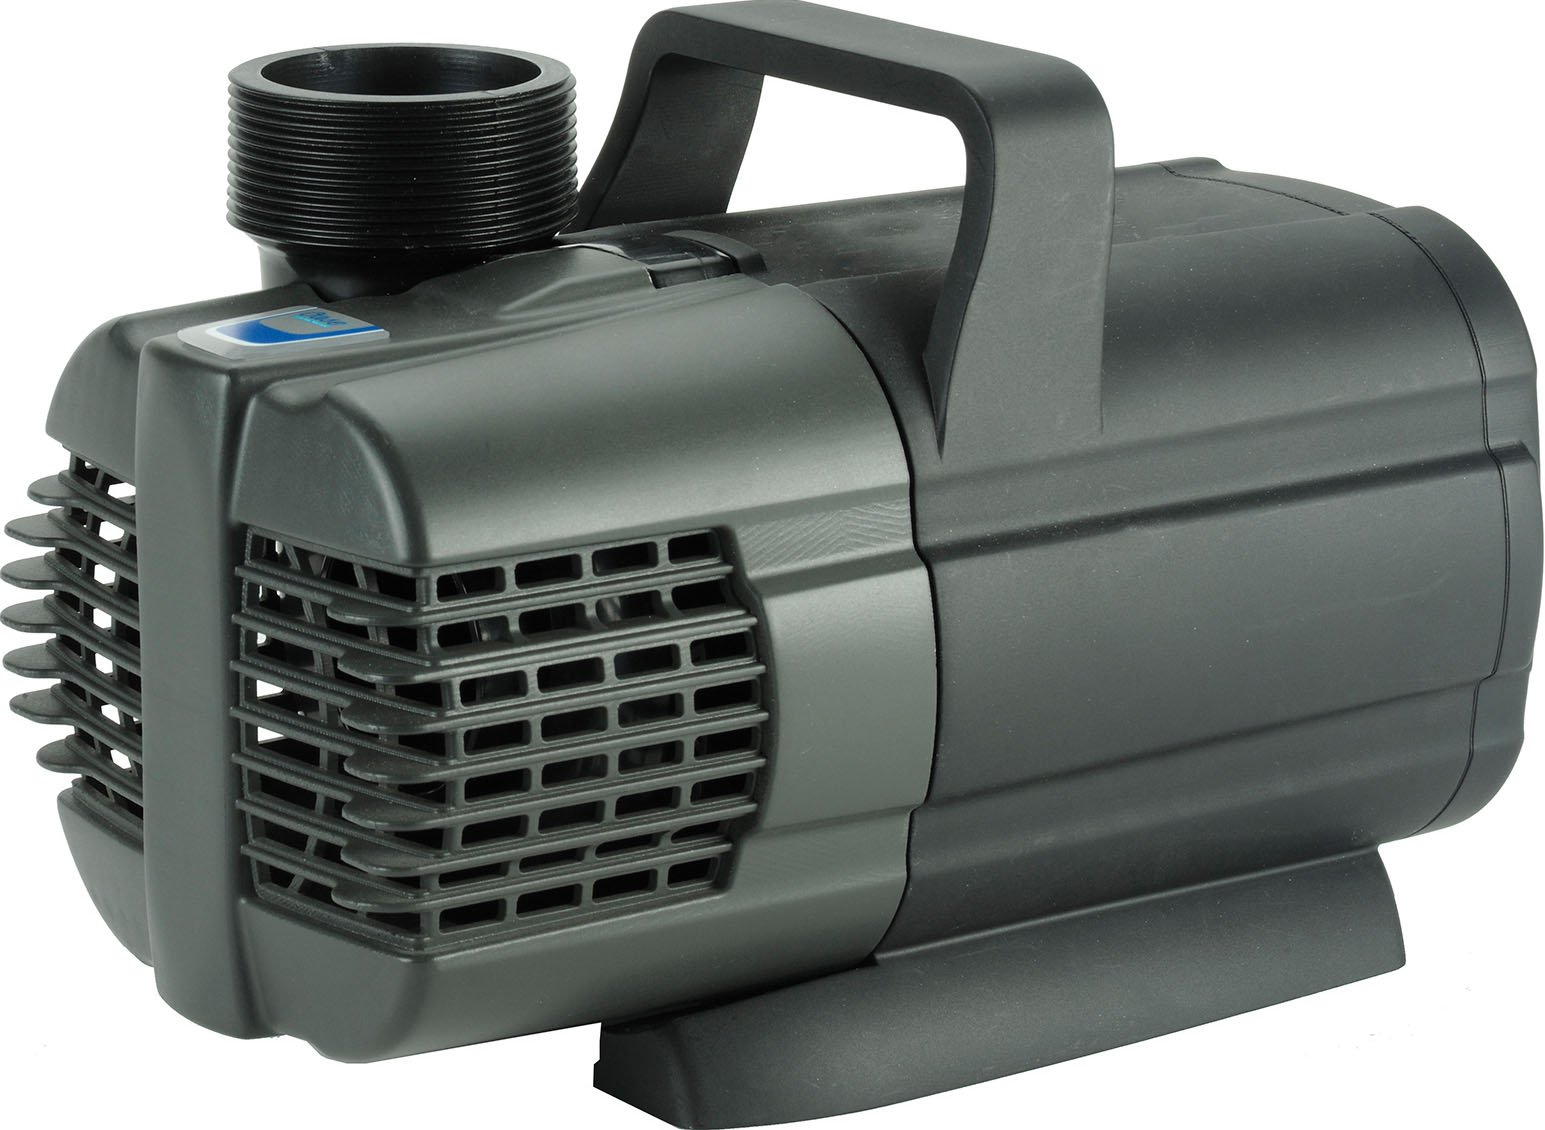 Oase 45424 5150 gallon/hr Waterfall Pump